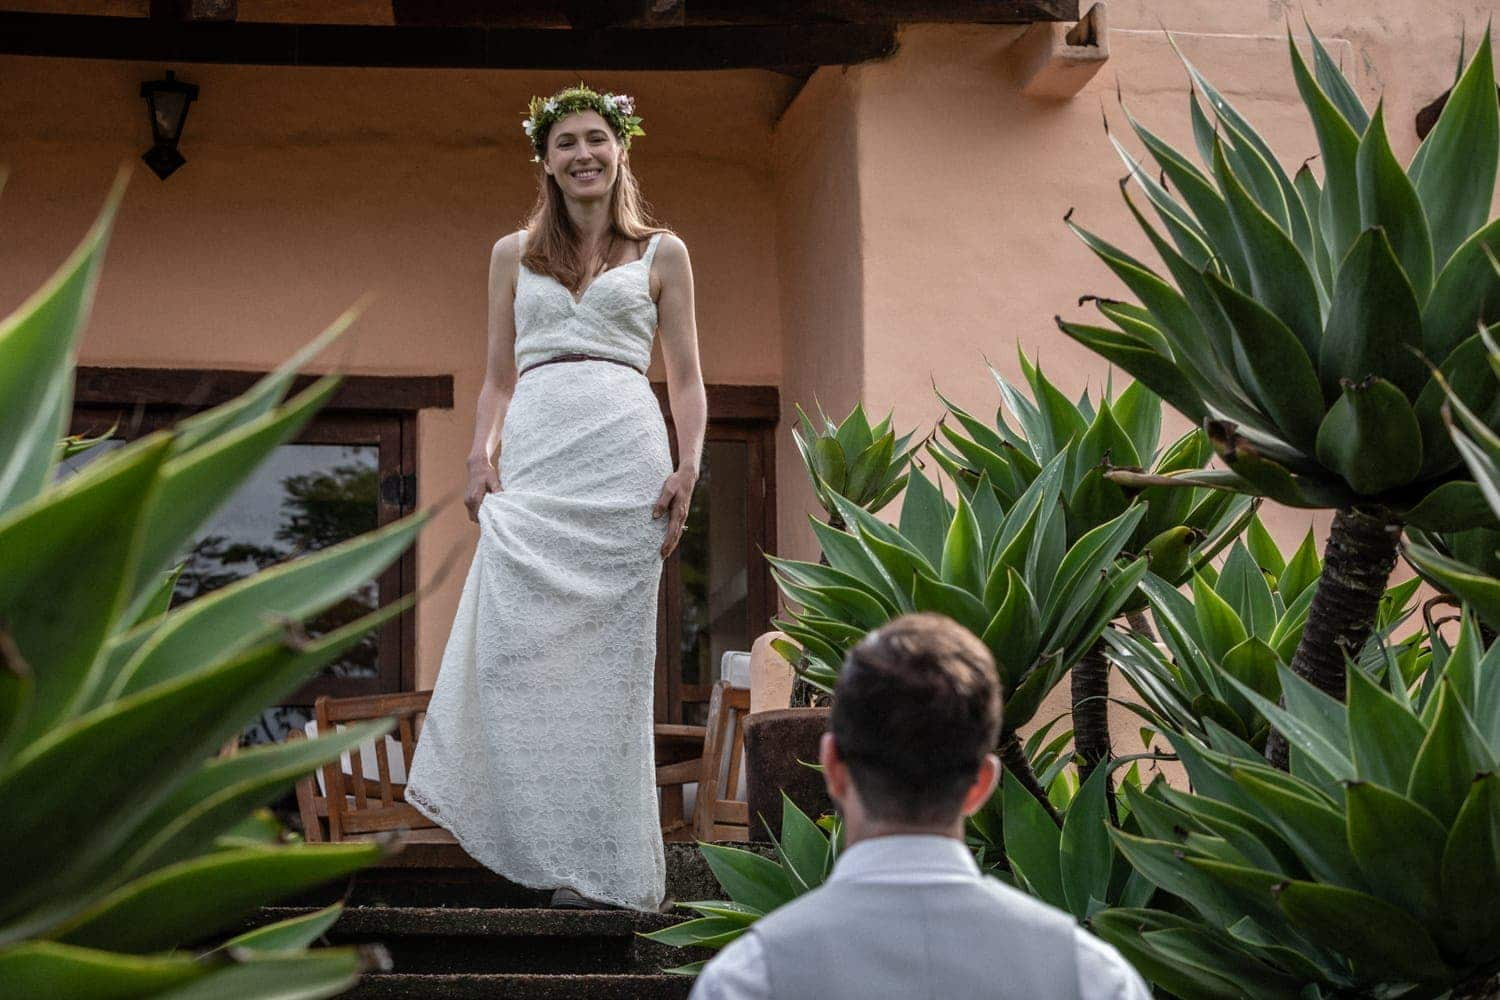 Bride in white wedding dress walks down stairs in tropical garden.